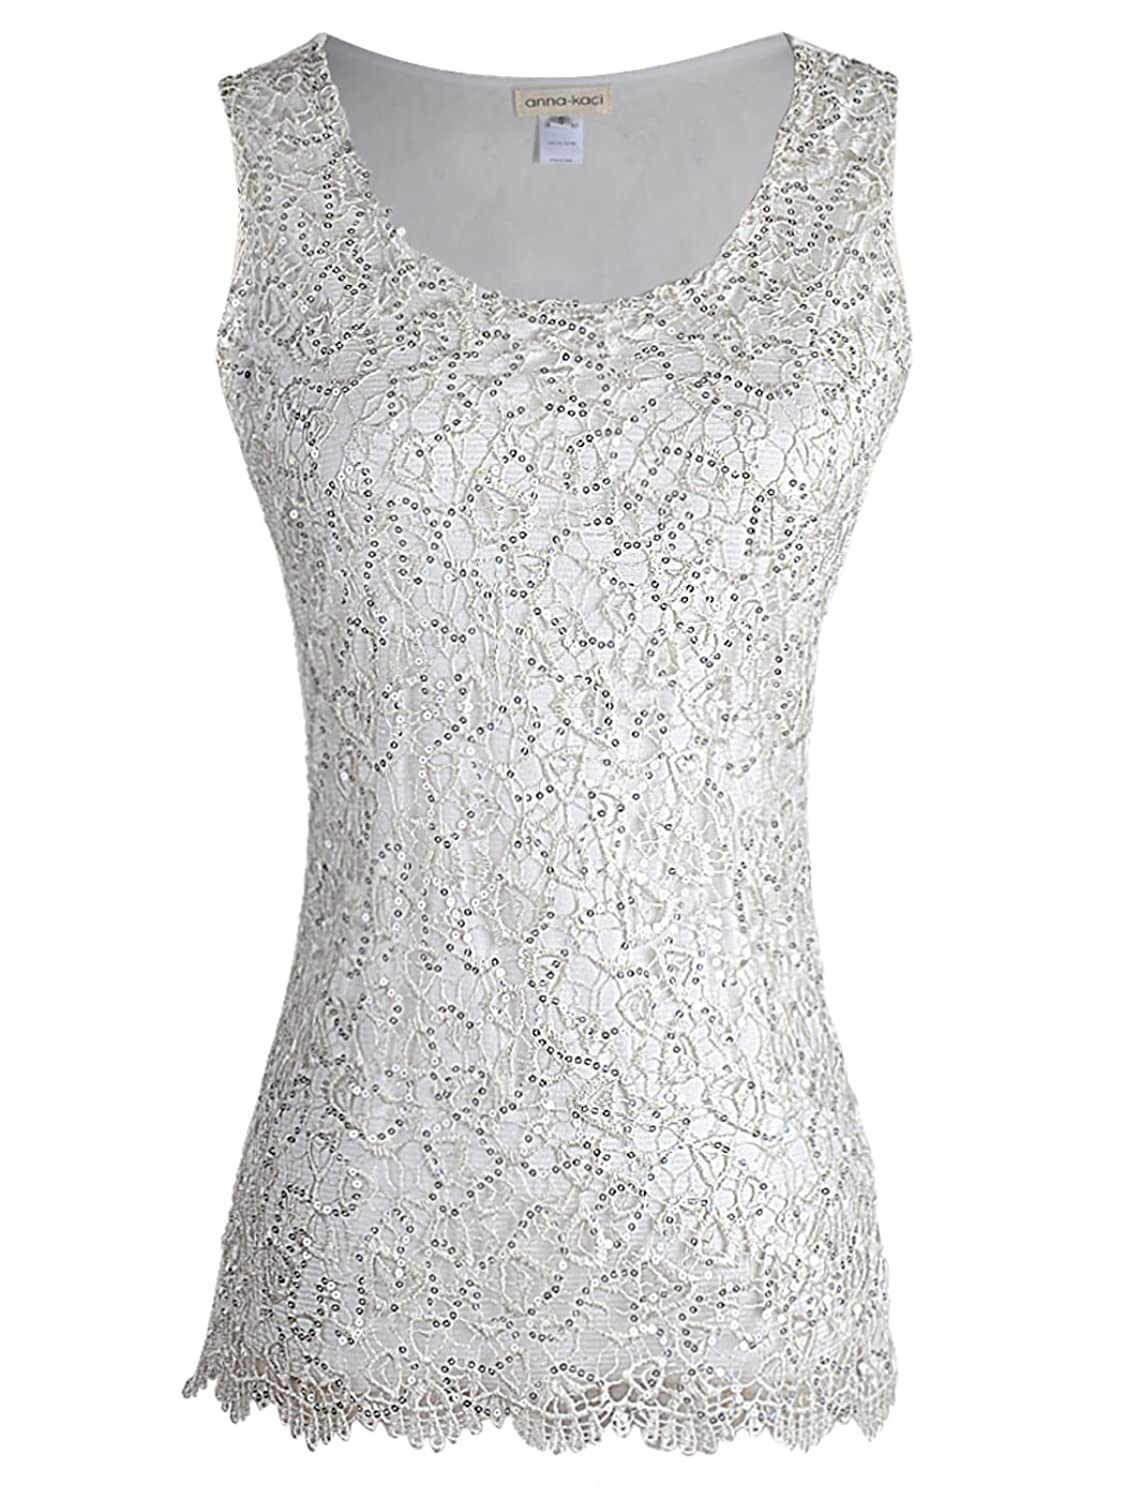 1920s Style Blouses, Shirts, Sweaters, Cardigans Anna-Kaci Womens Sparkly Lace Embroidery Sequin Sleeveless Shell Vest Tank Top $25.99 AT vintagedancer.com